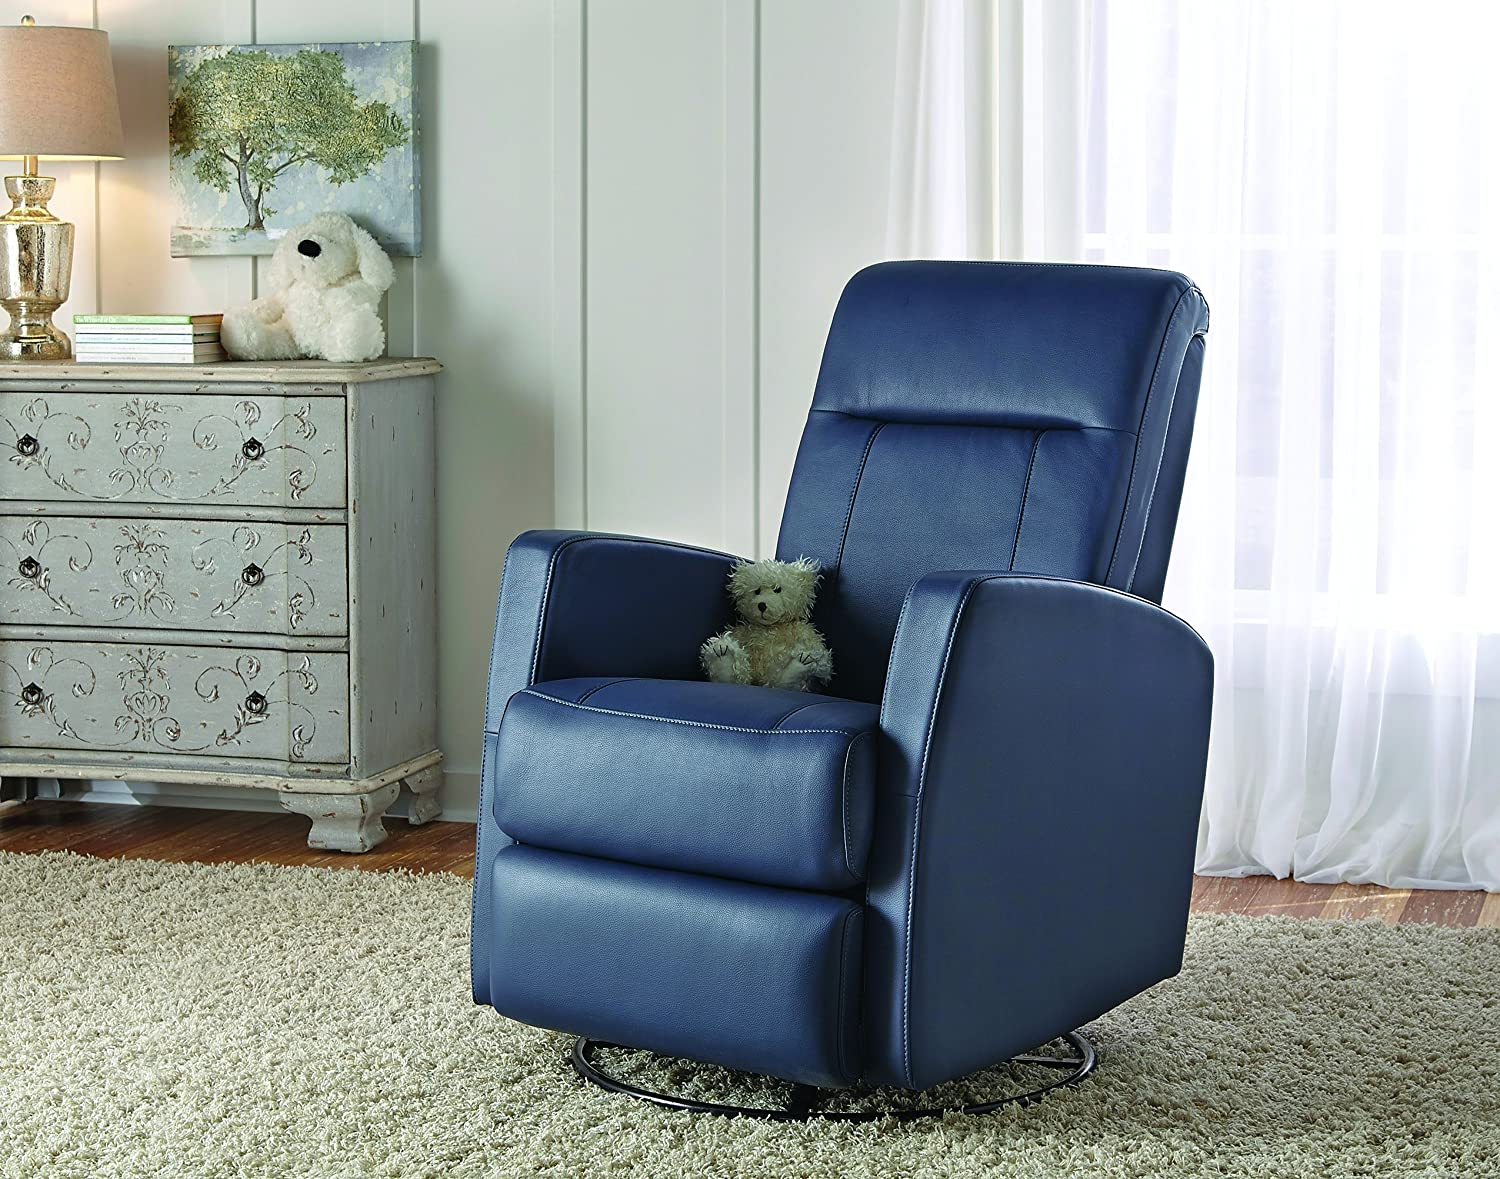 swivel recliner chairs best swivel recliner chairs swivel recliner chair best swivel recliner & best swivel recliner chairs Archives - Comfortable recliner.com islam-shia.org